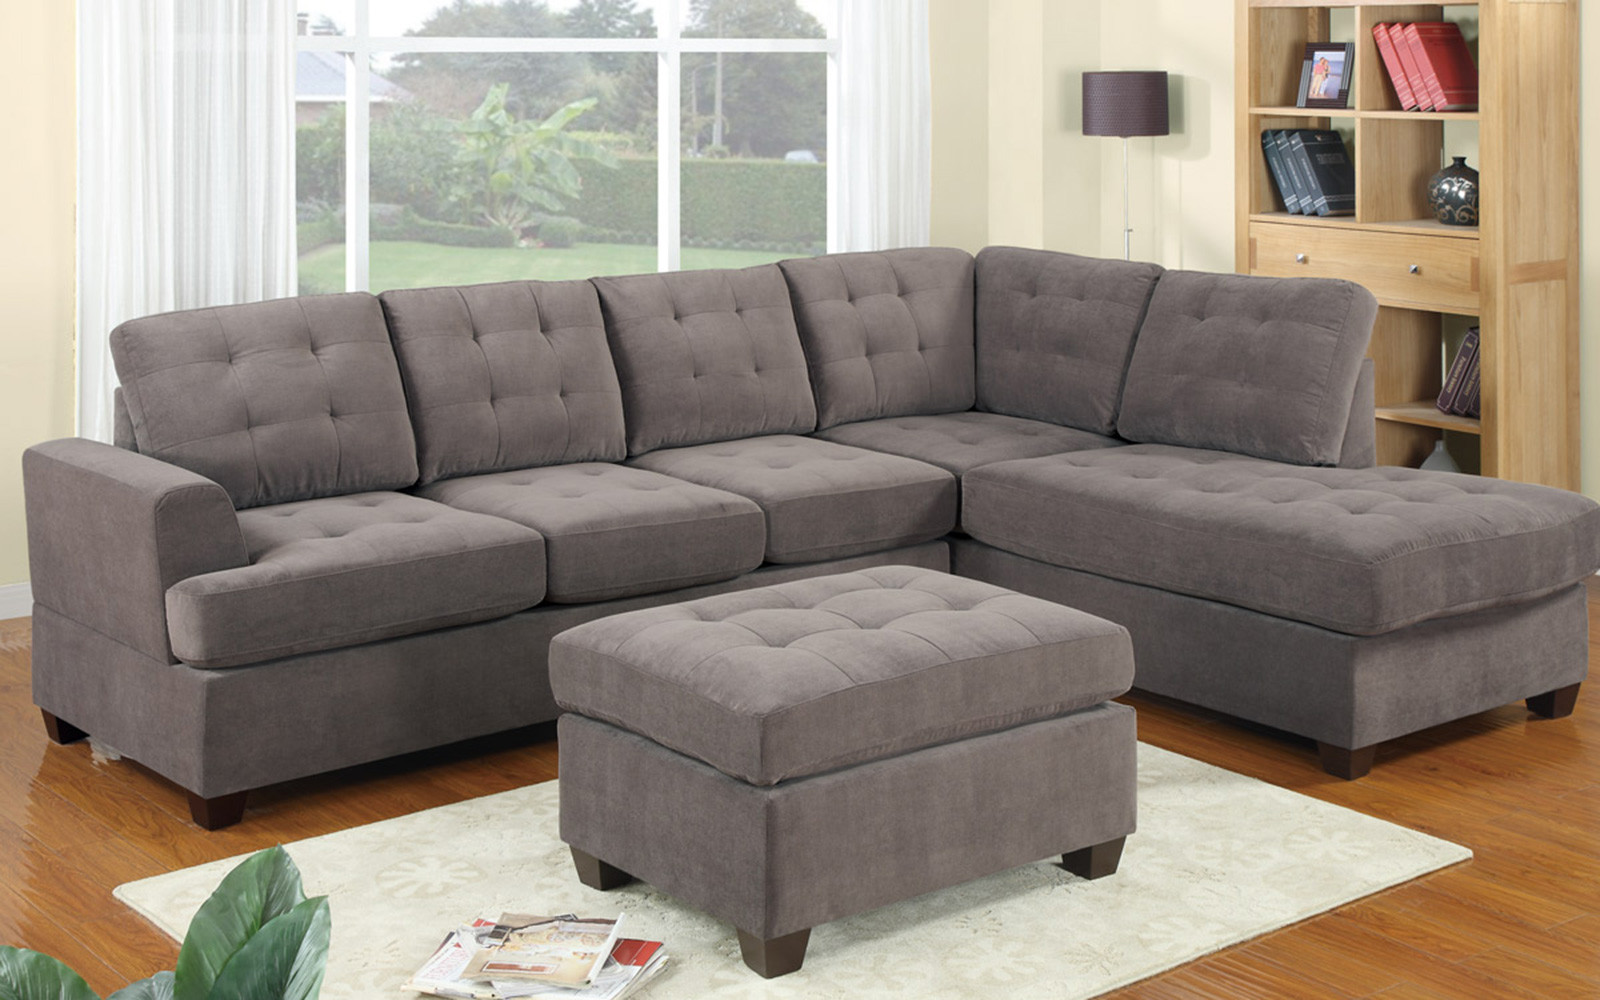 Surprising 2 Piece Modern Reversible Grey Tufted Microfiber Sectional Sofa With Ottoman Walmart Com Spiritservingveterans Wood Chair Design Ideas Spiritservingveteransorg